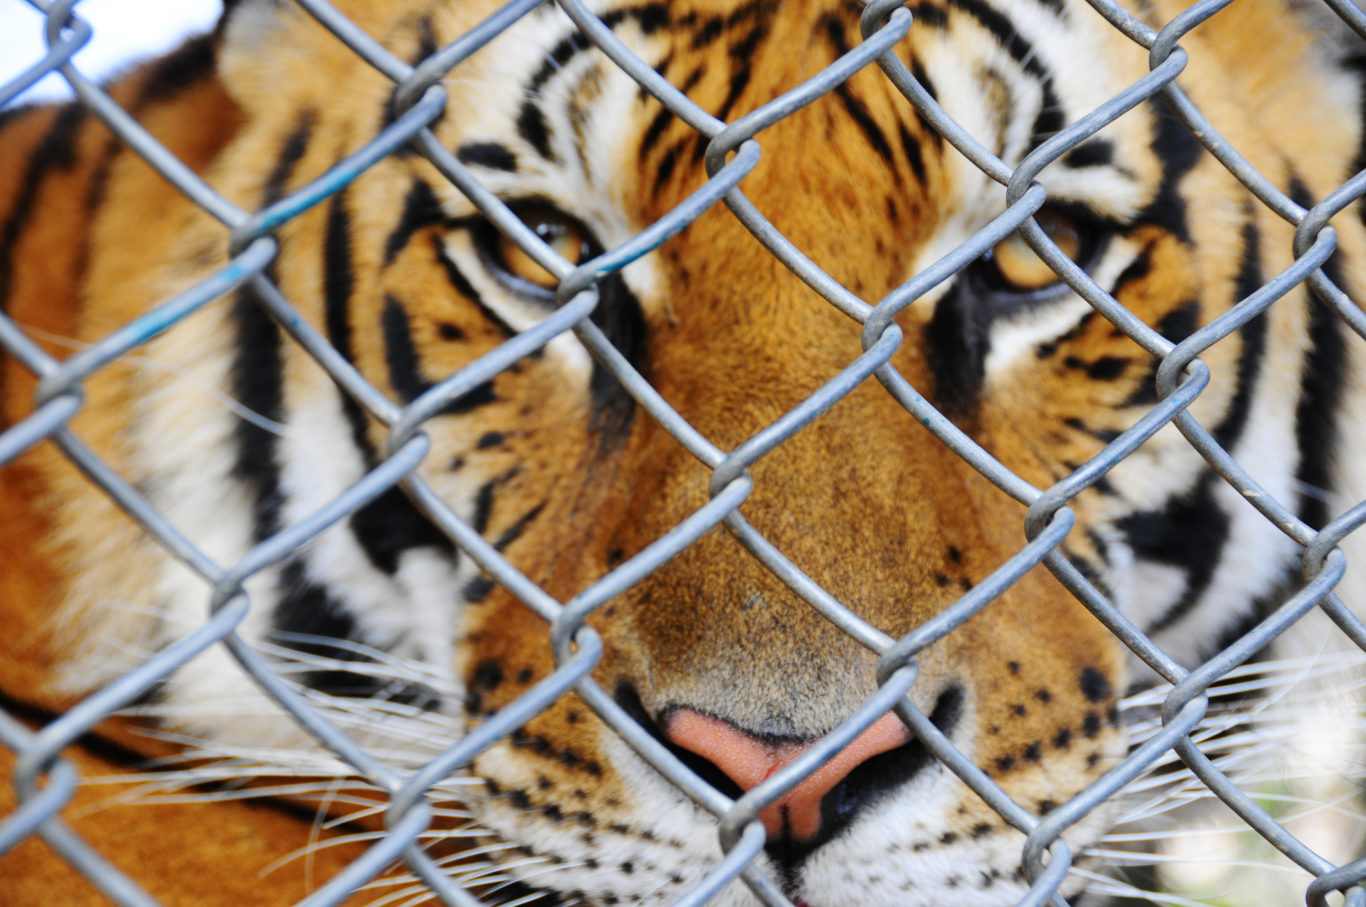 Tinder is asking users to stop posting selfies with tigers